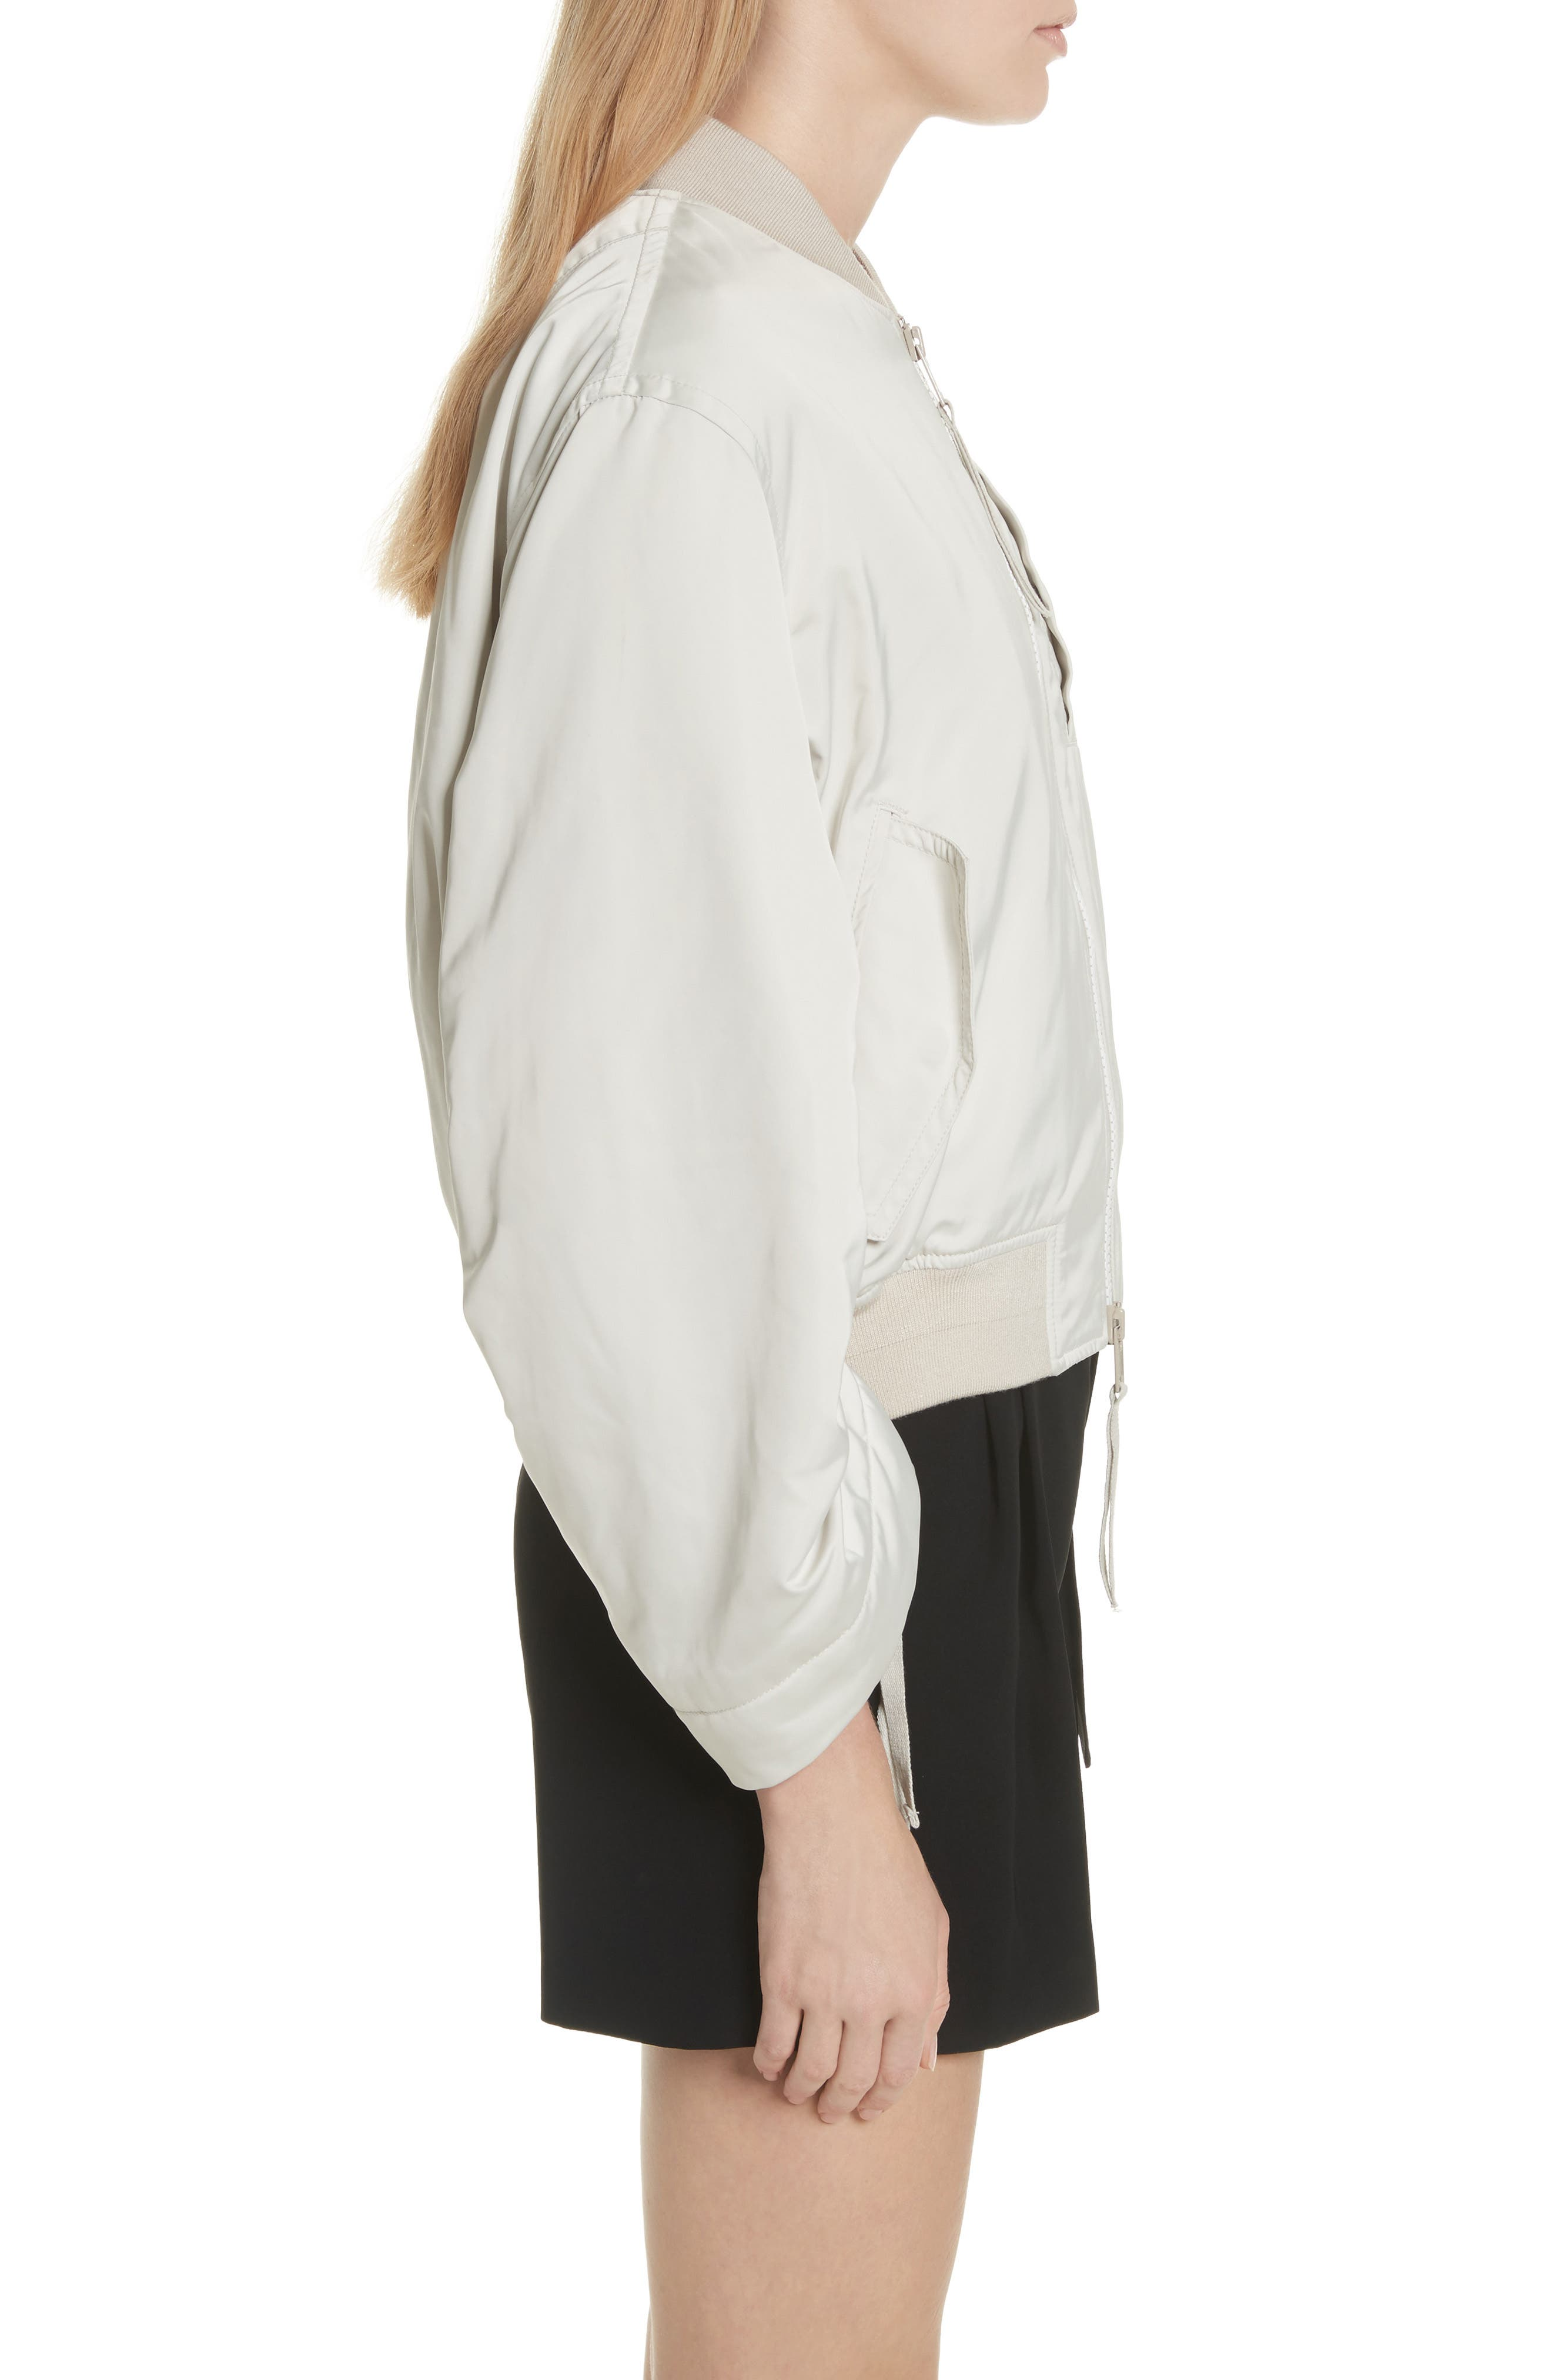 Parachute Bomber Jacket,                             Alternate thumbnail 3, color,                             Chalet